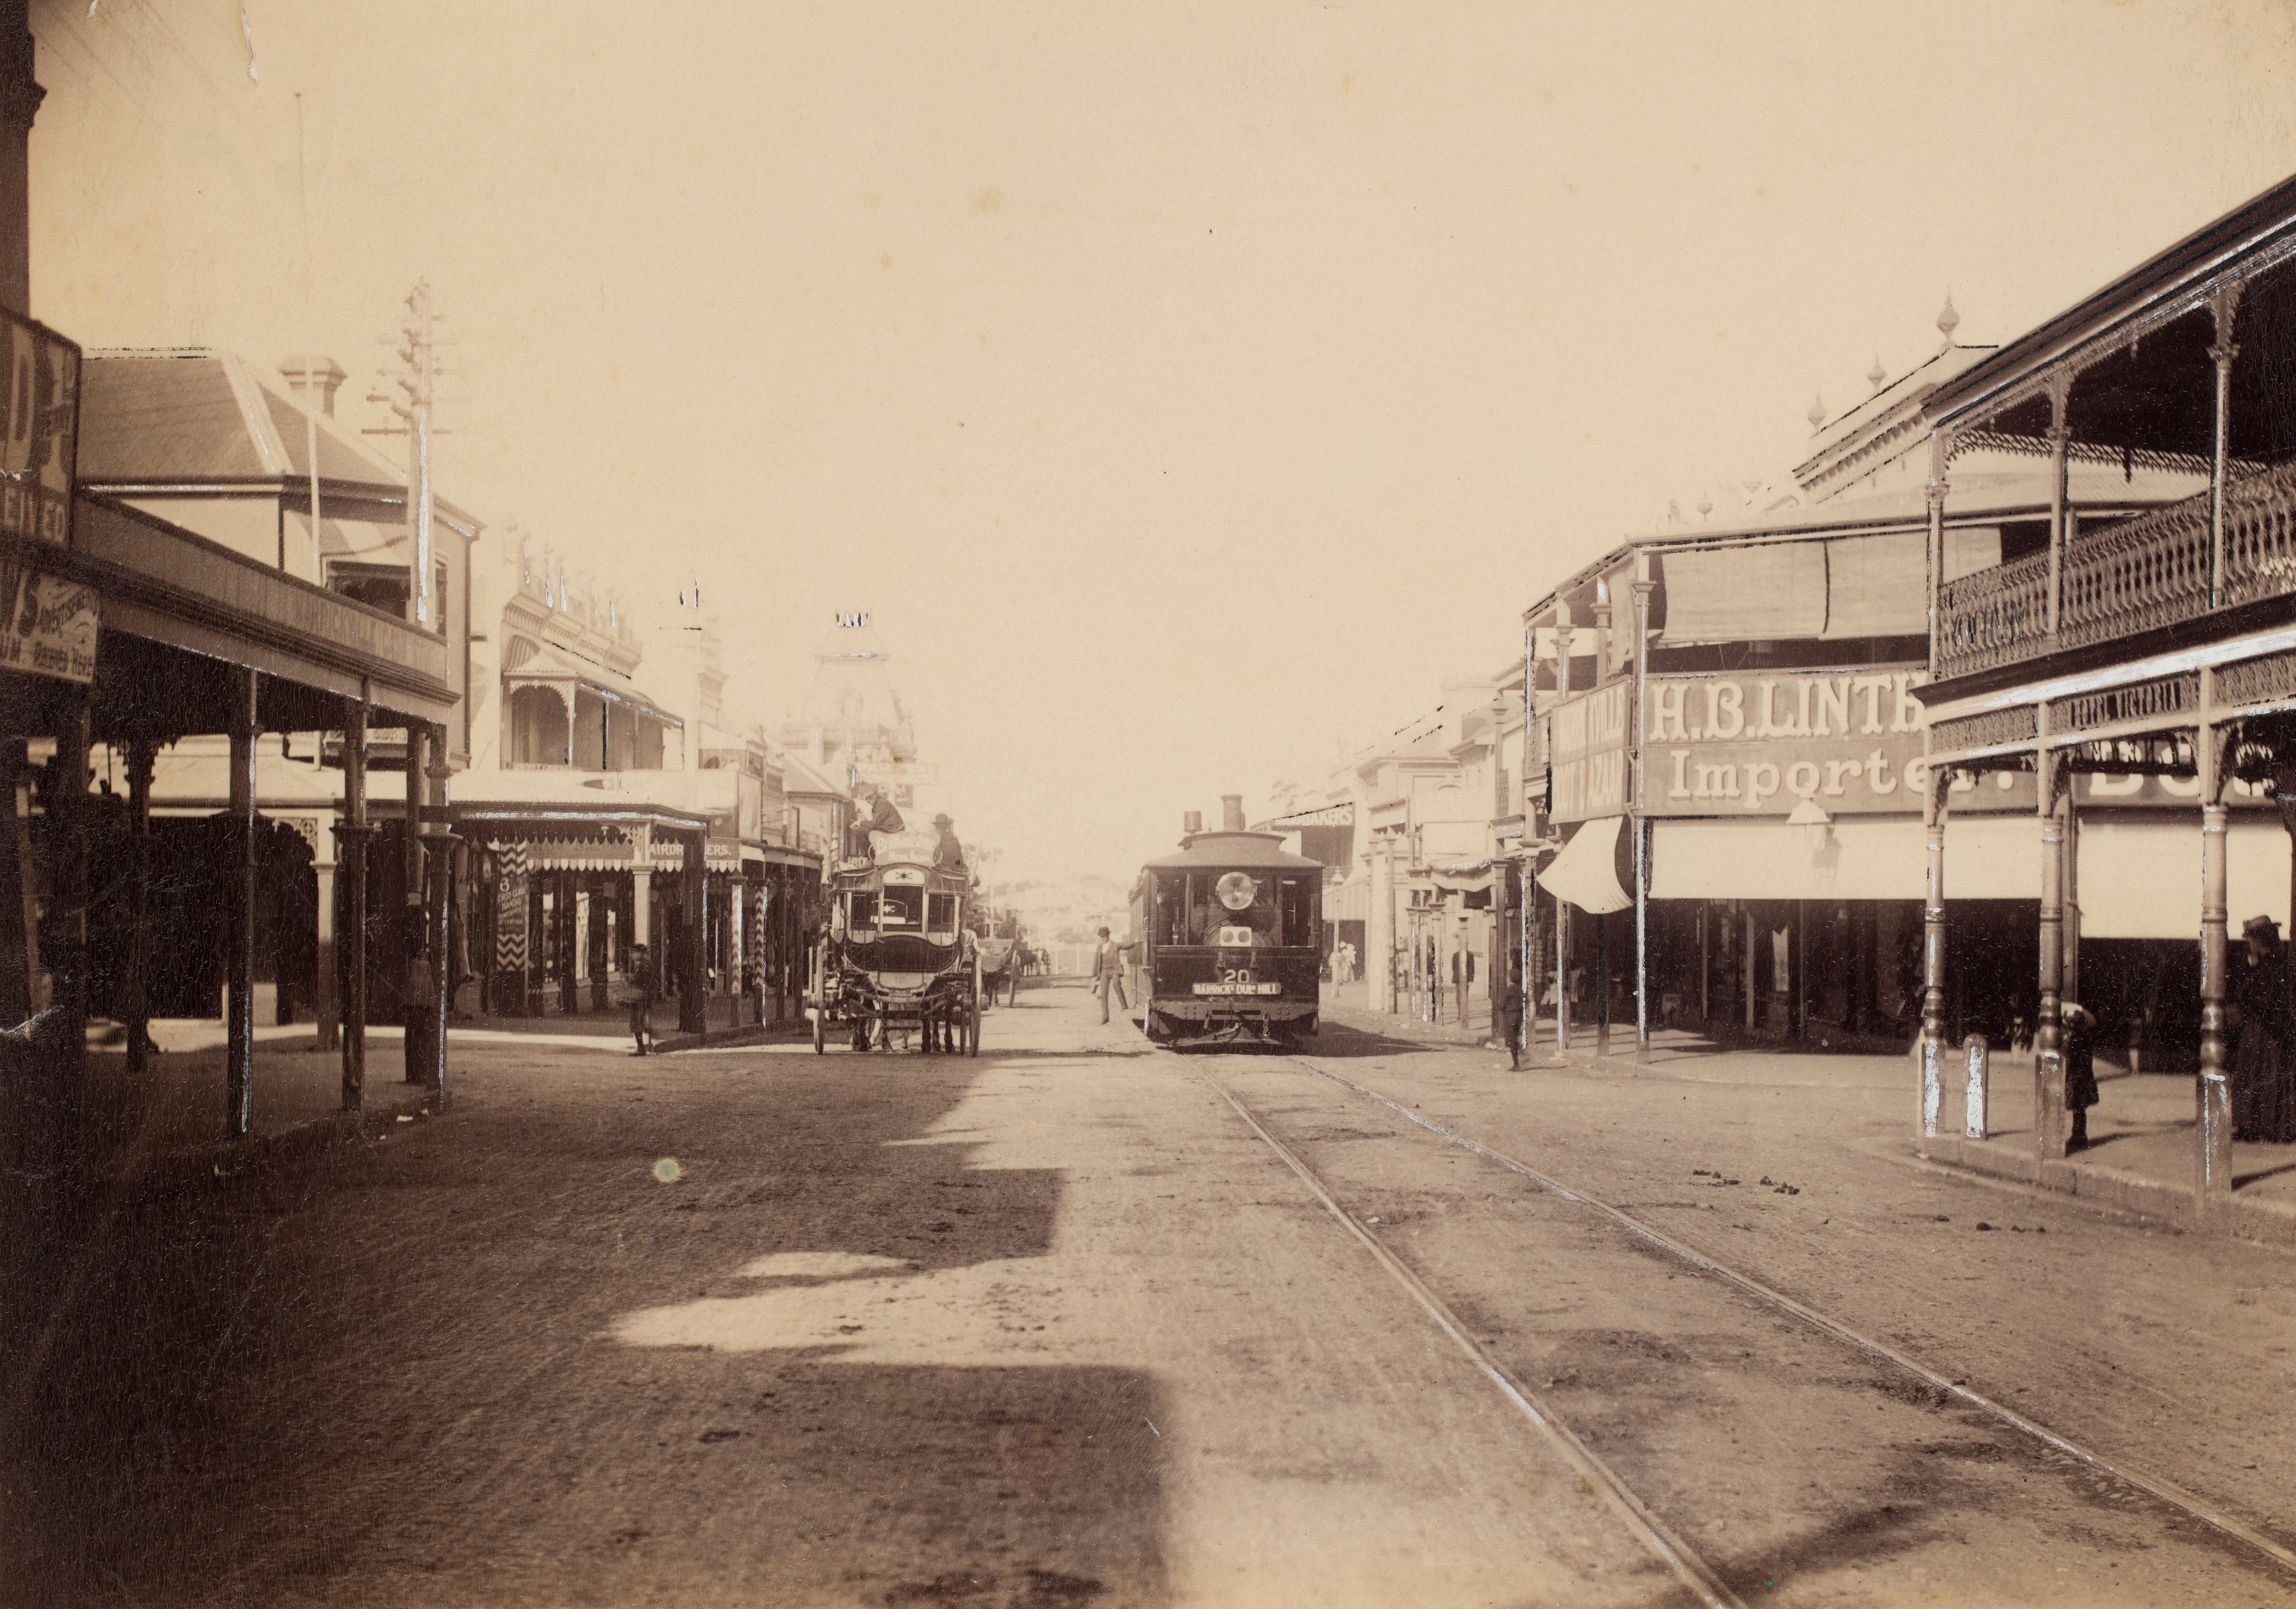 Baldwin Steam Tram, Marrickville Tram Terminus, c.1889, by John Rae